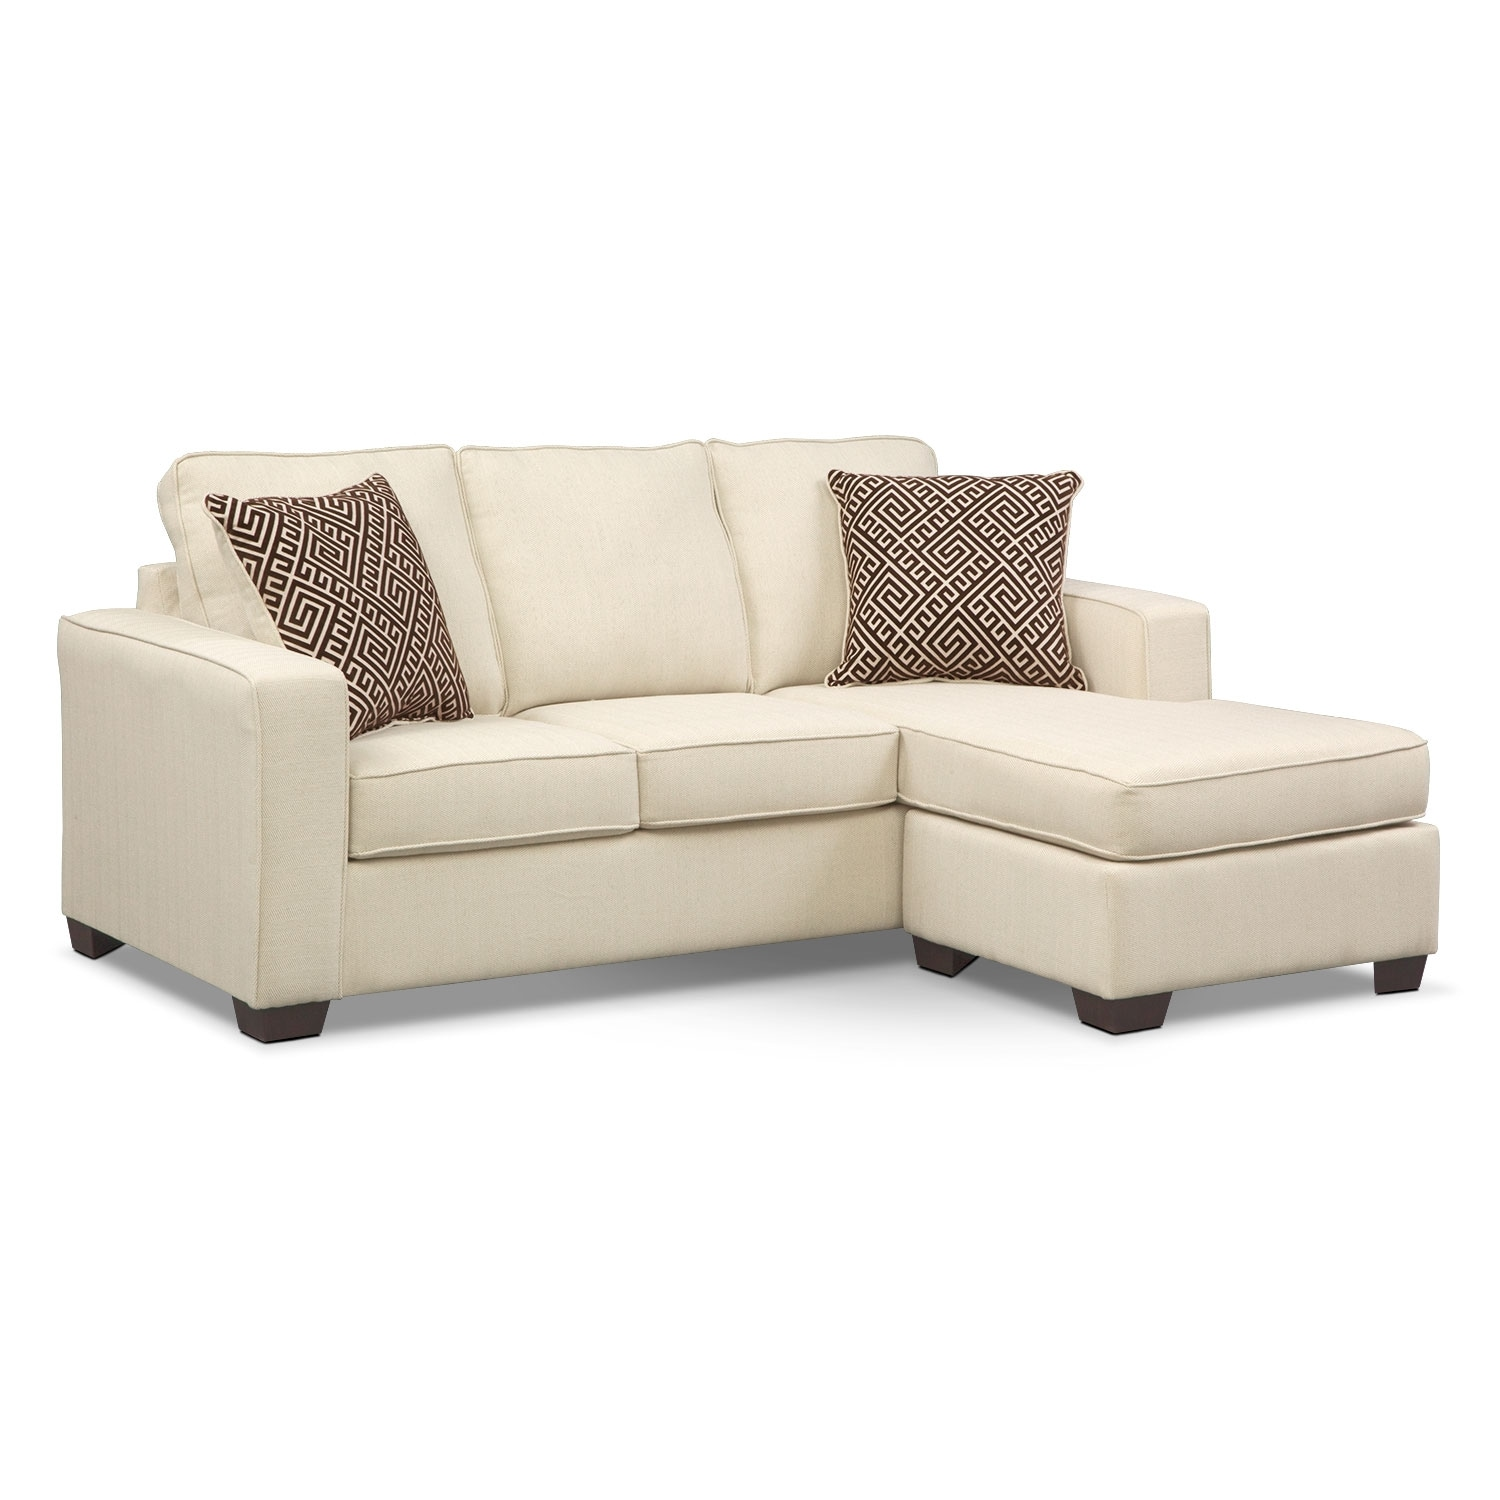 Sterling memory foam sleeper sofa with chaise beige for Chaise furniture